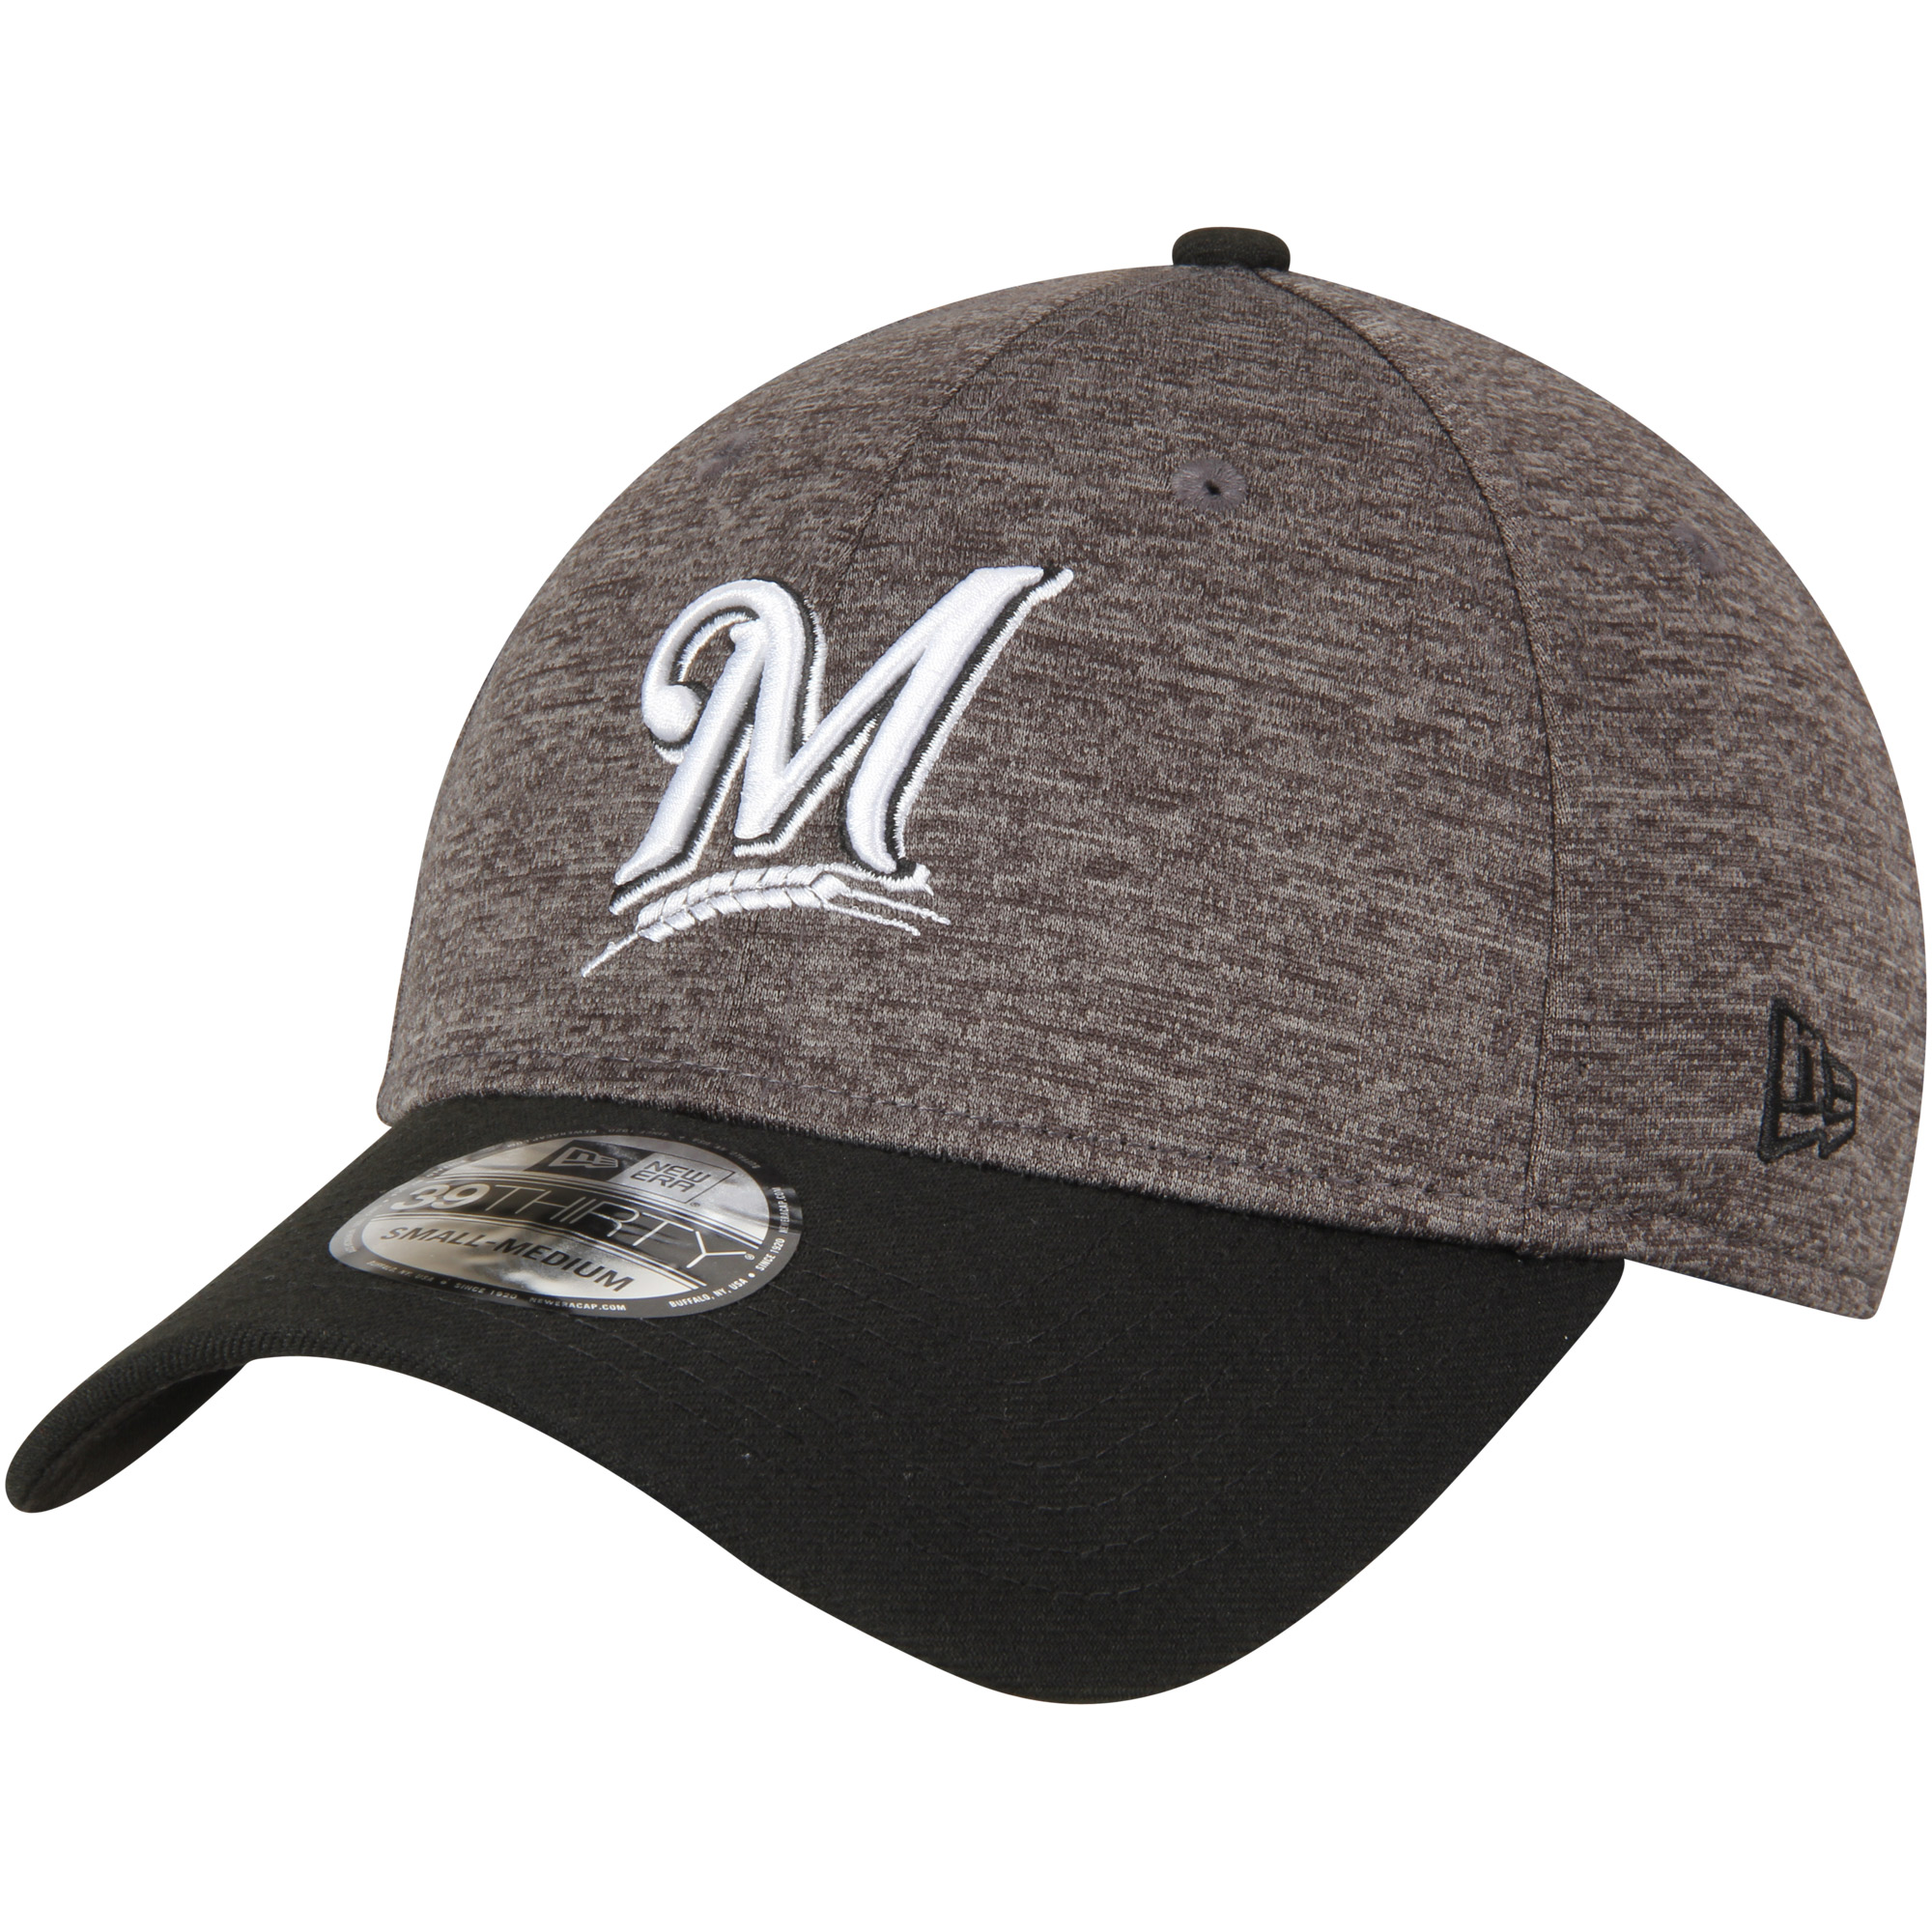 Milwaukee Brewers New Era Shadow Tech 39THIRTY Flex Hat - Heathered Gray/Black